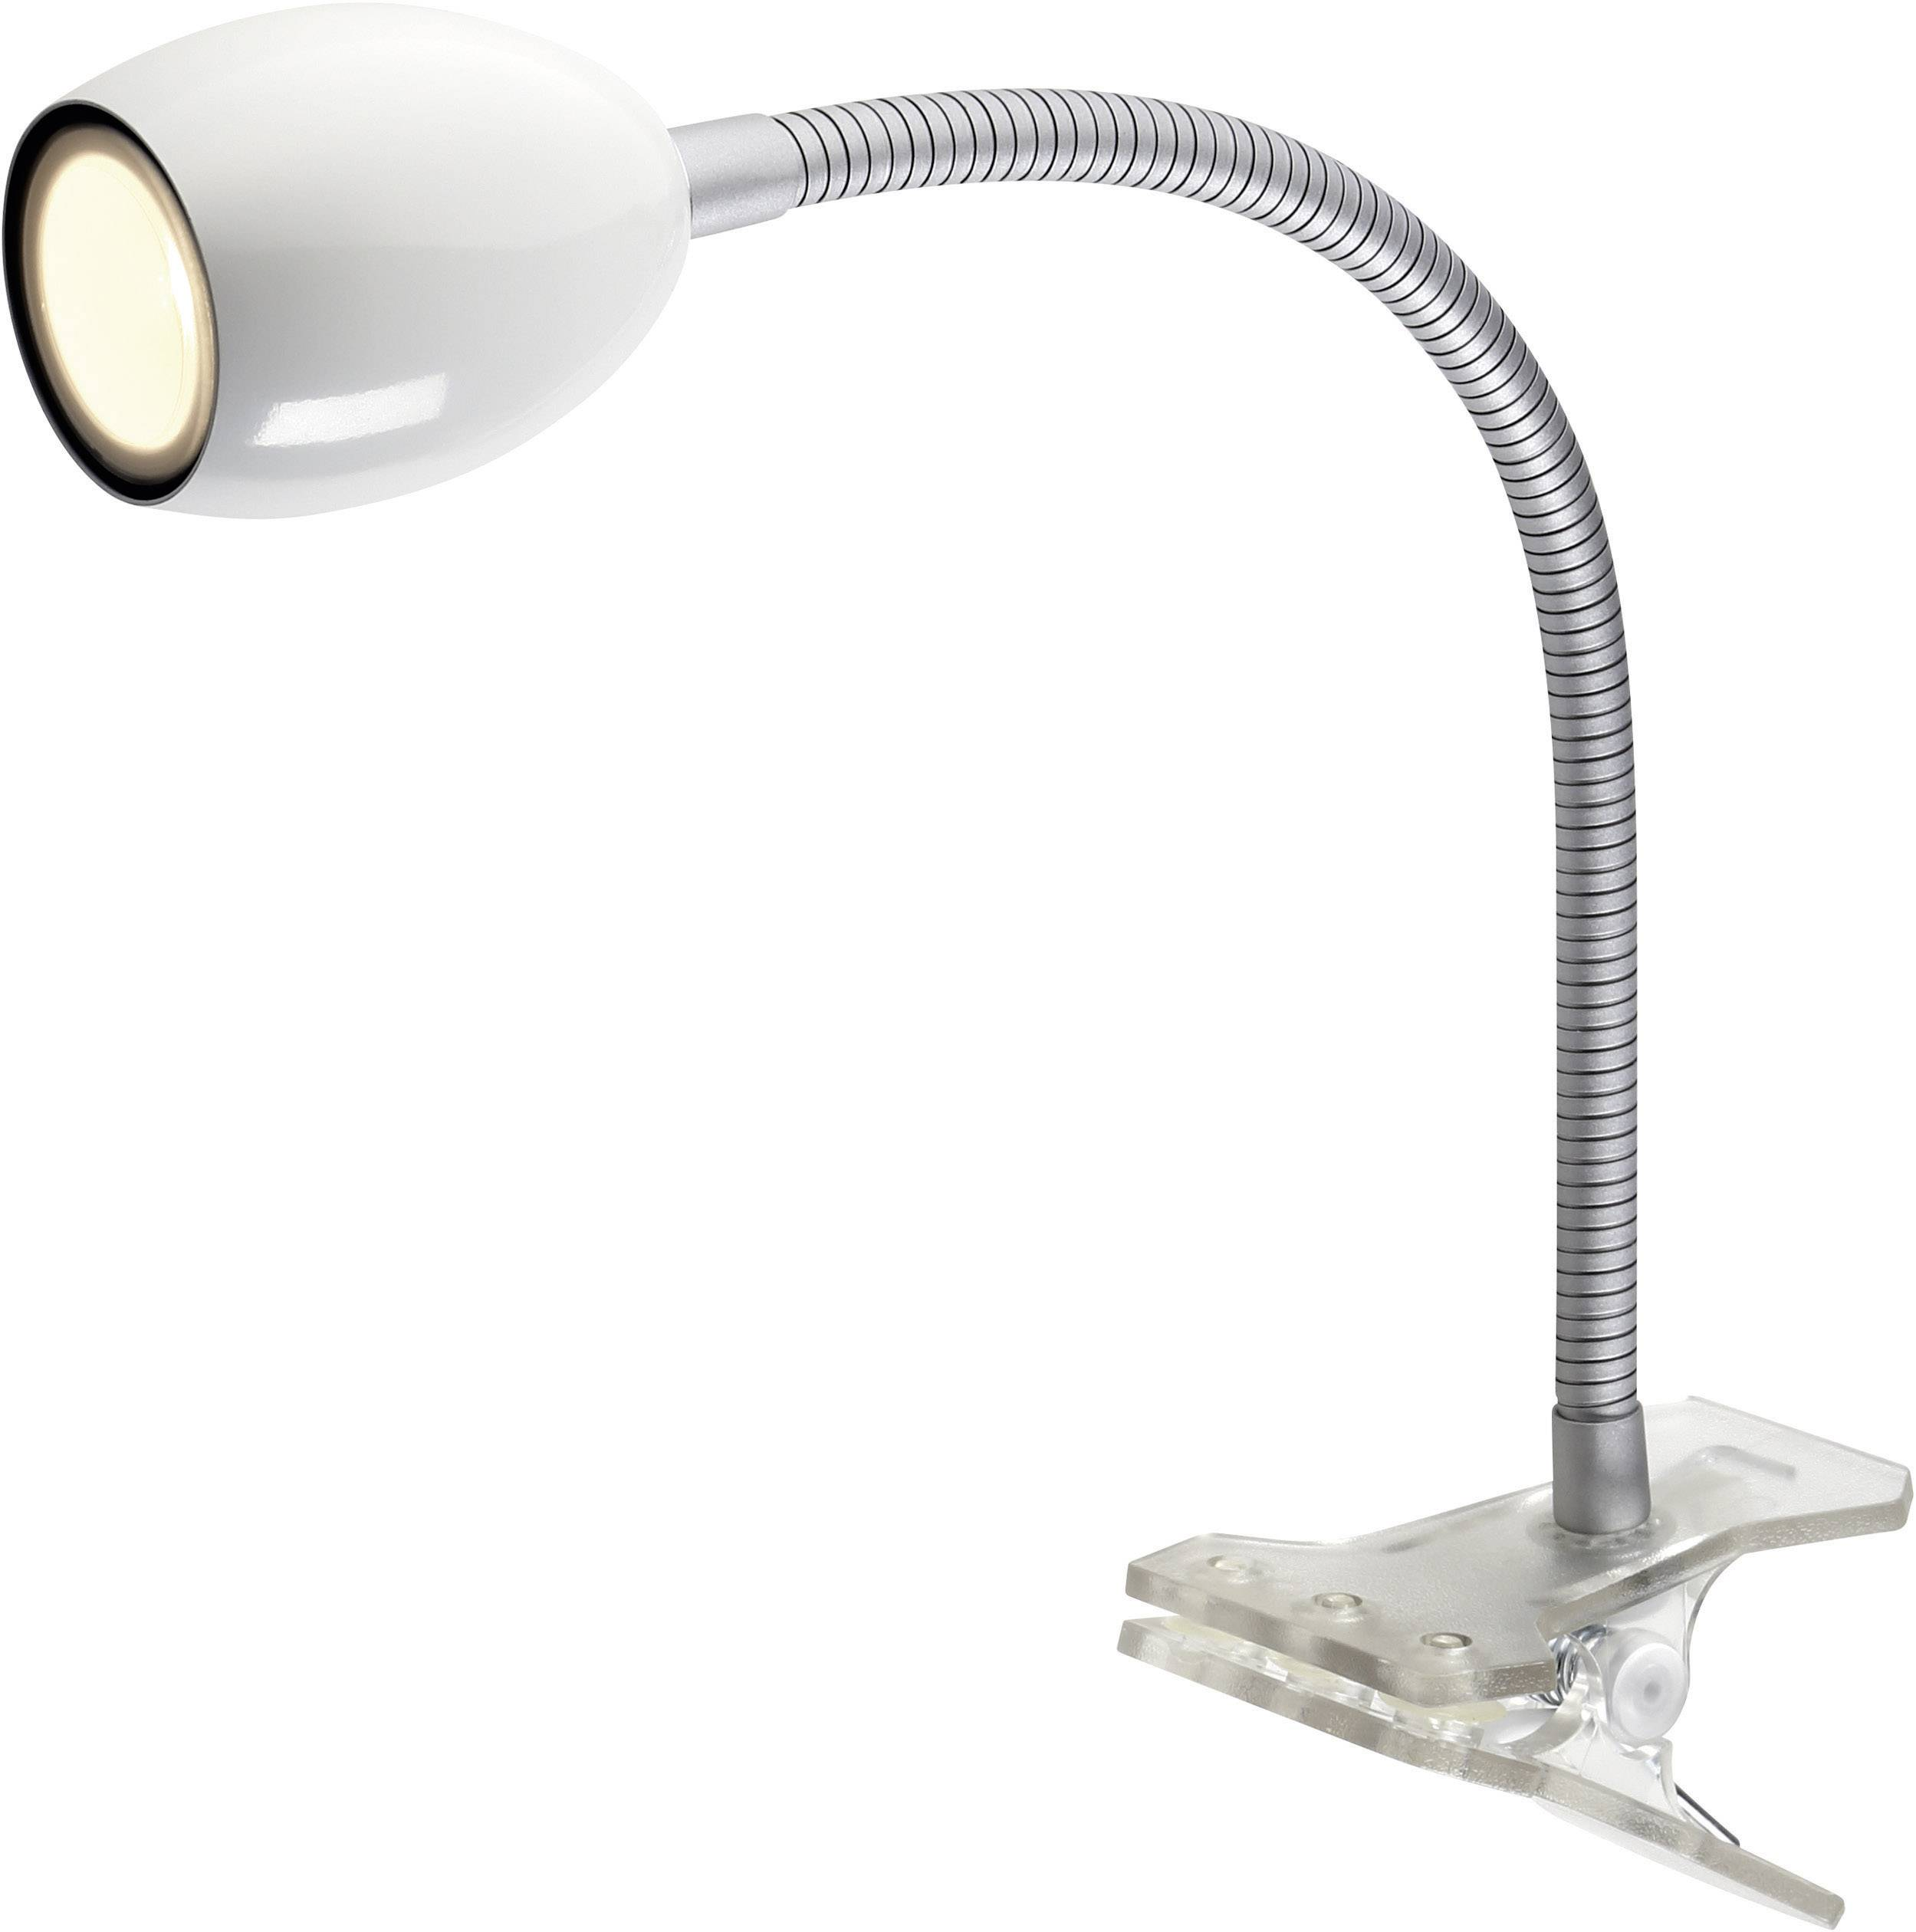 lampe led a pince 1 5 w 18x led integree nomwh 01 nomwh 01 blanc 1 pc s